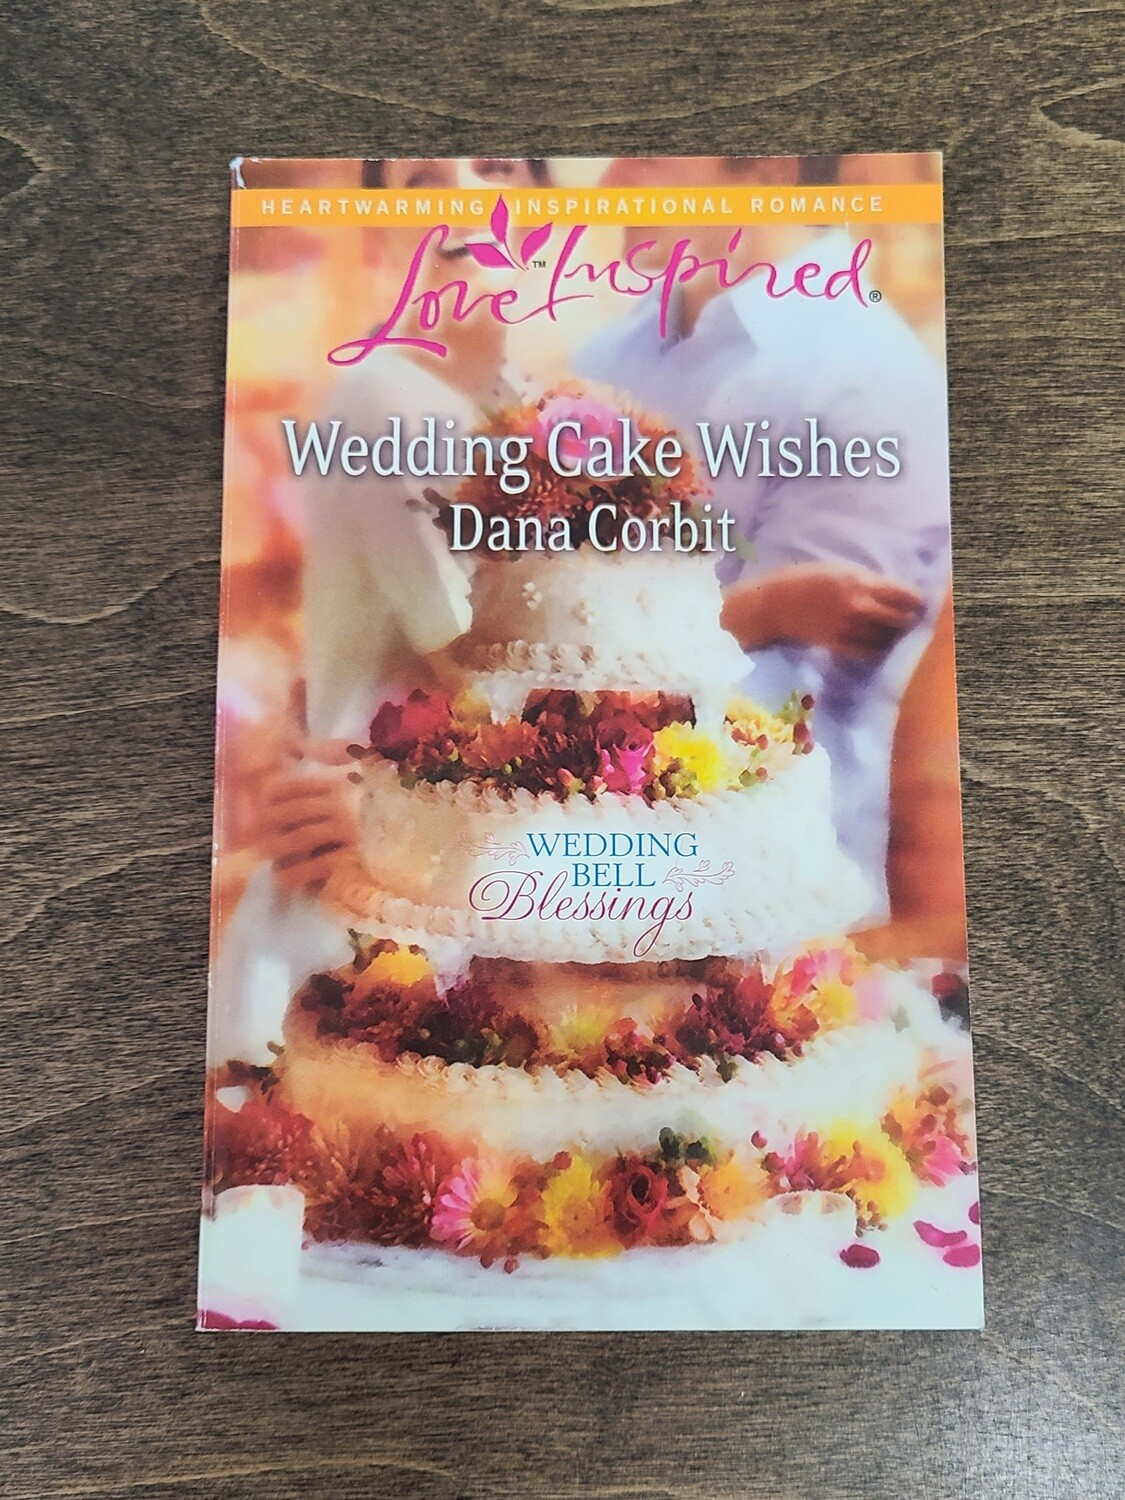 Wedding Cake Wishes by Dana Corbit